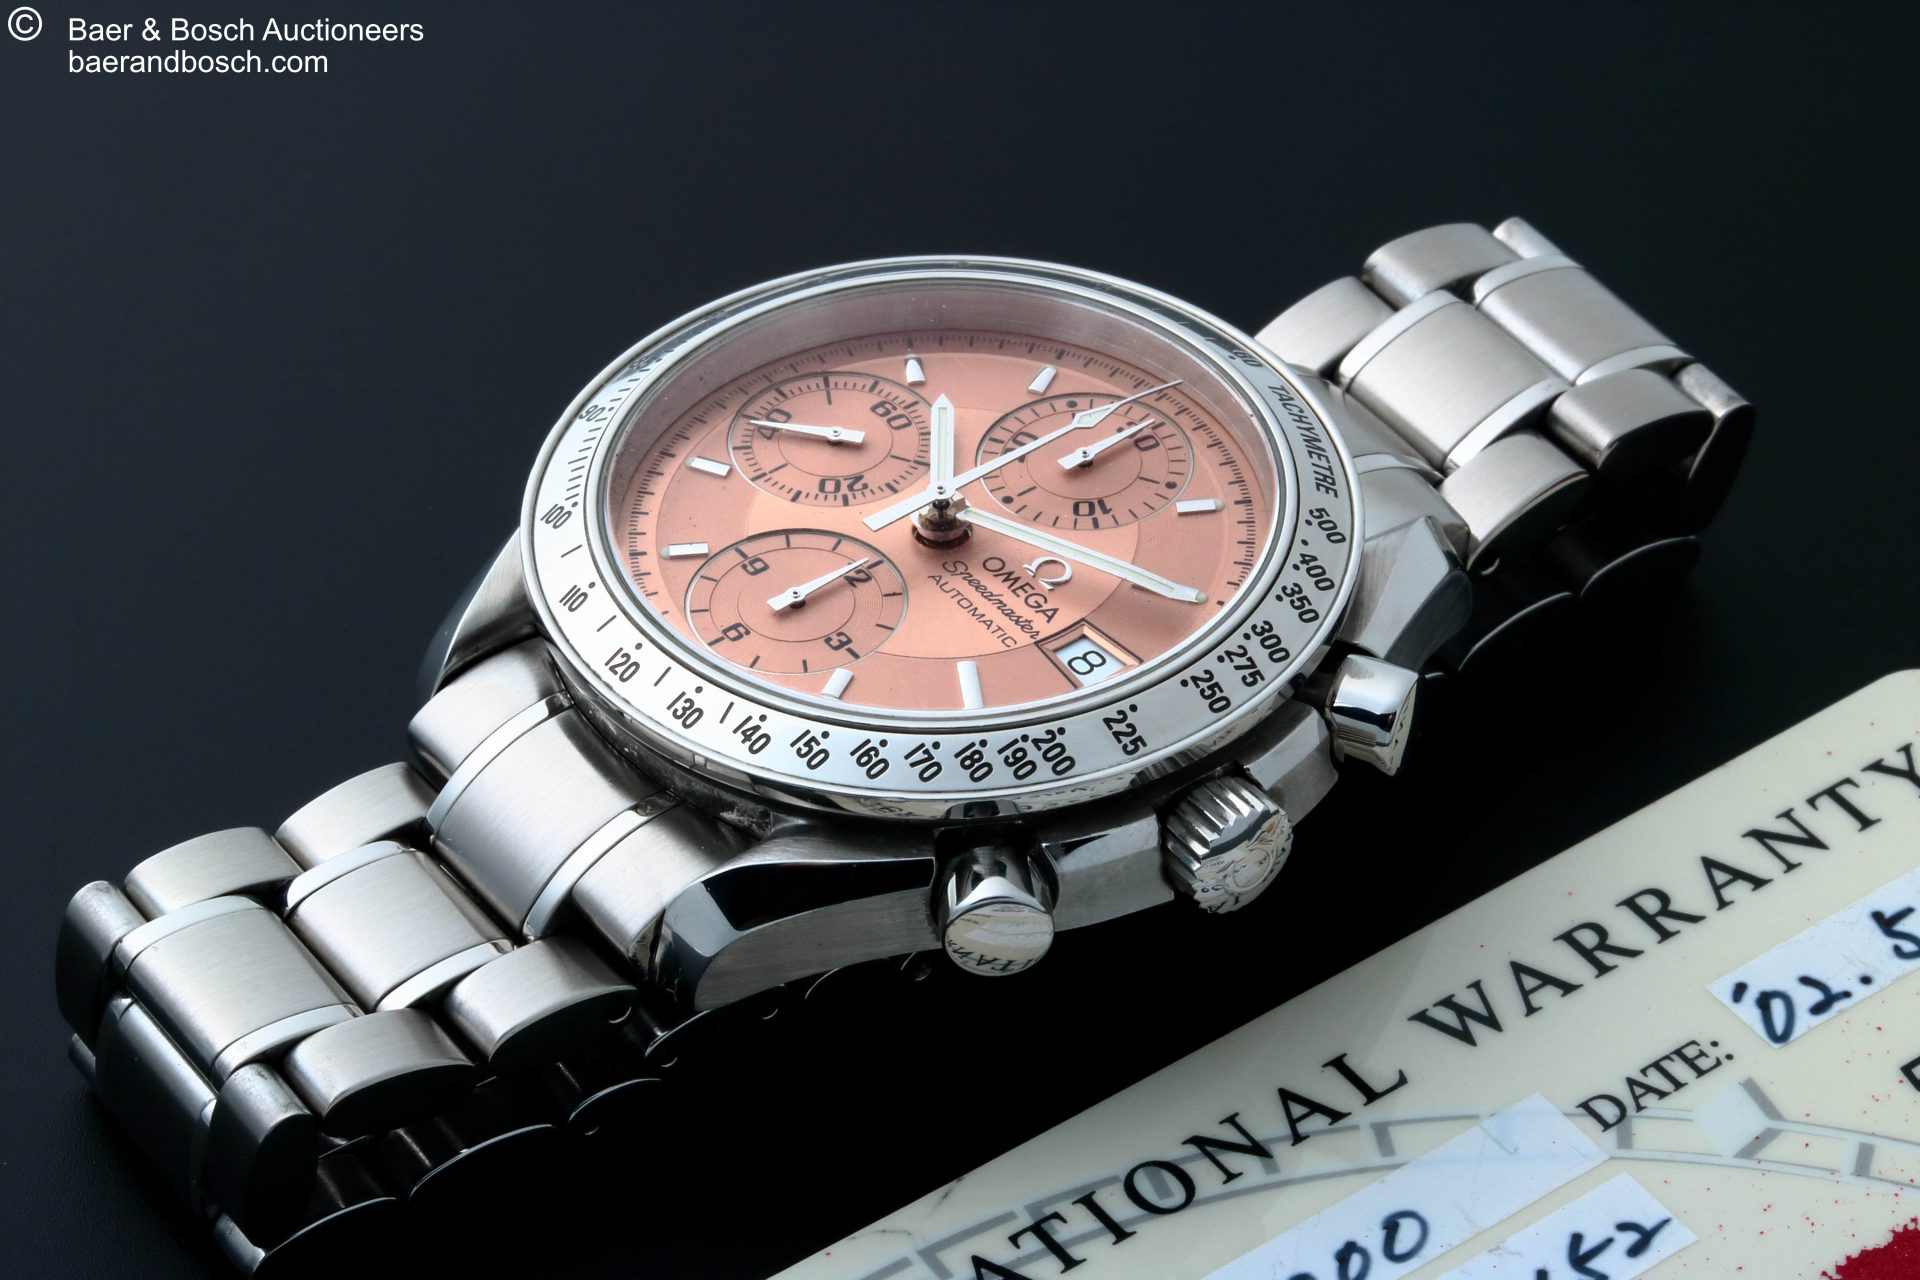 Omega Speedmaster Date Salmon Copper Dial Watch 3513.60 - Baer & Bosch Collecting Times